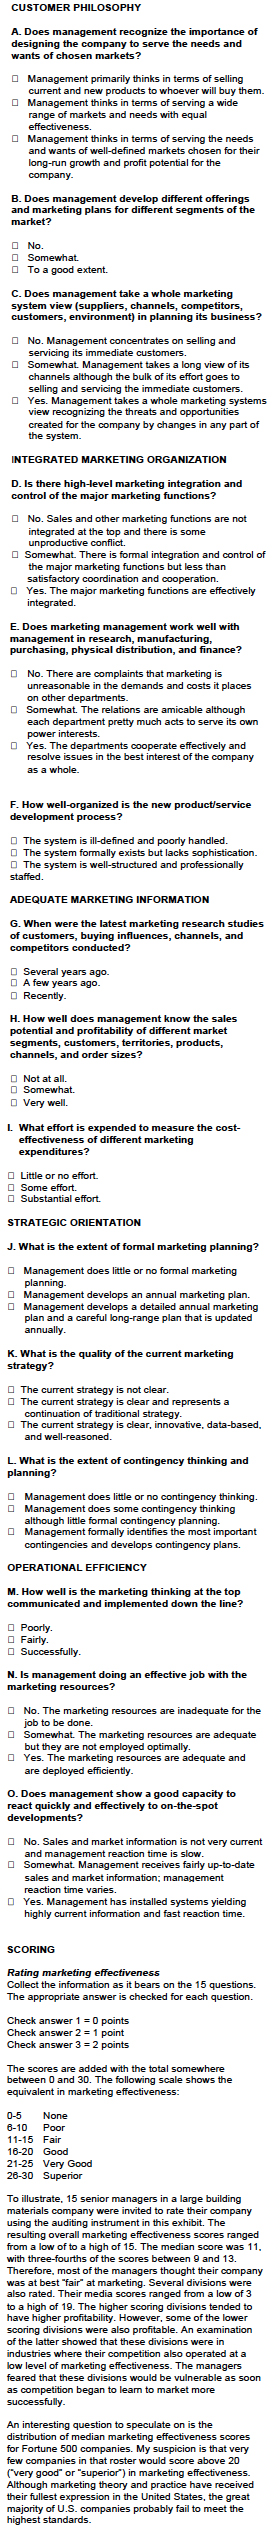 marketing effectiveness assessment